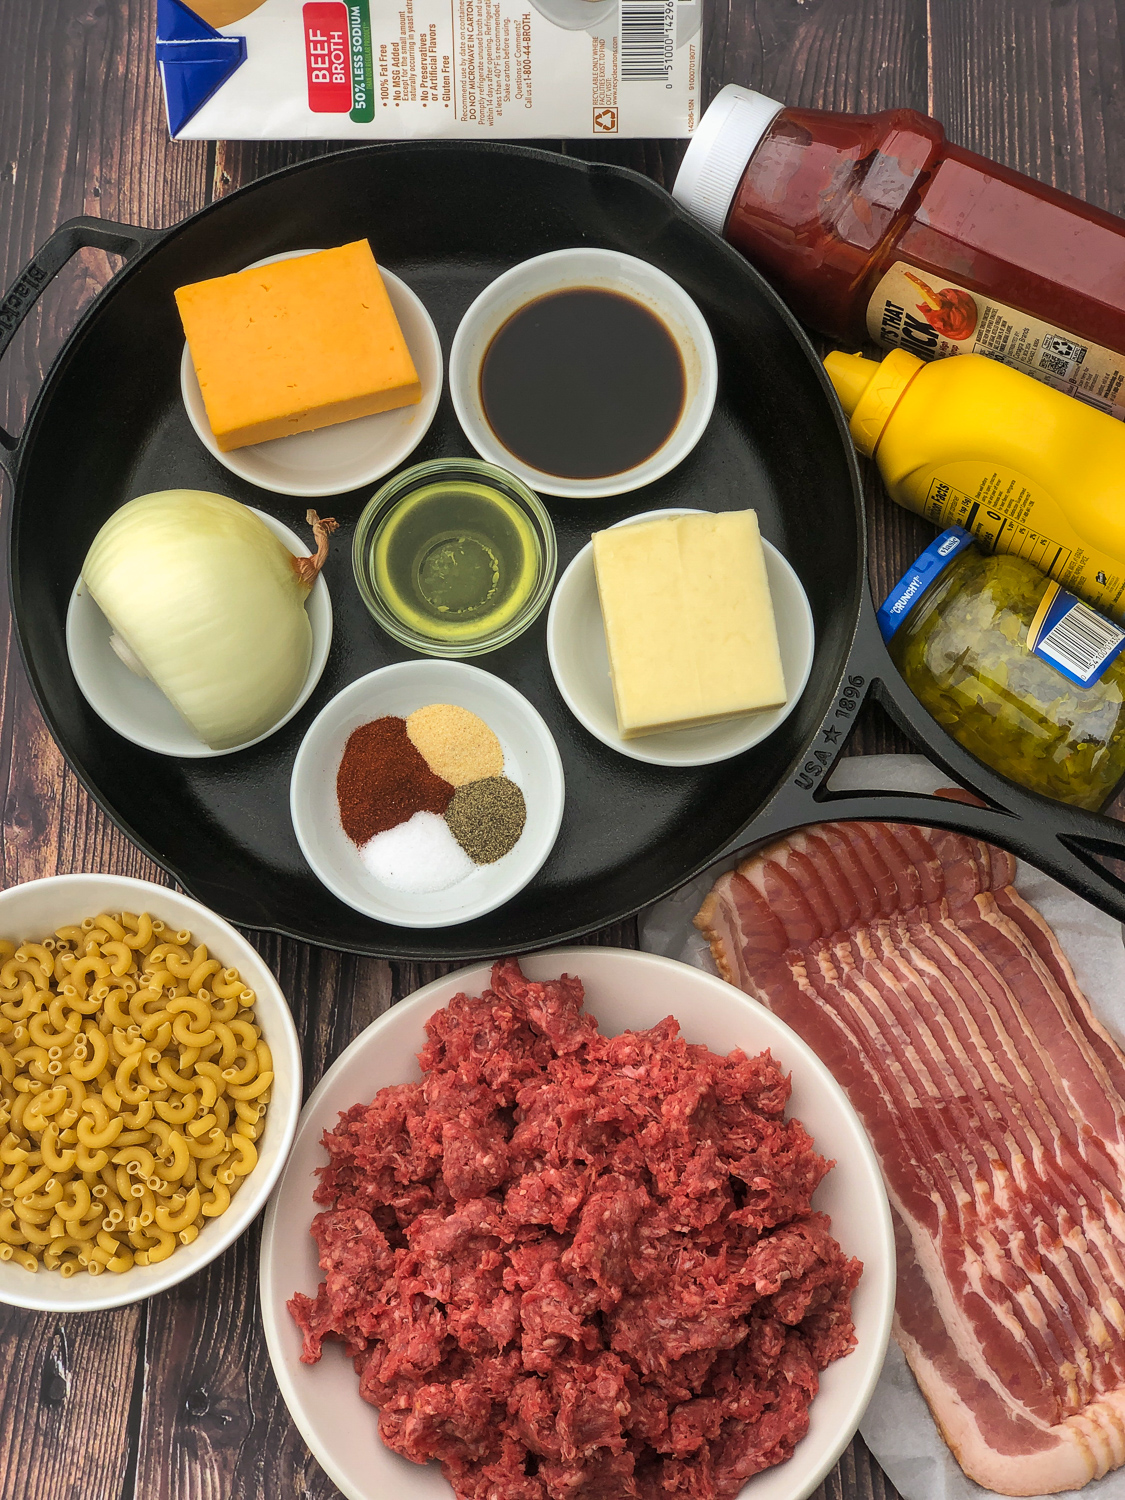 Ingredient to make Bacon Cheeseburger Casserole in a cast iron skillet: cheddar cheese, worcestershire sauce, mozzarella cheese, dill pickle juice, spices, onion, macaroni, ground beef, bacon, dill pickle relish, yellow mustard, ketchup, and beef broth.